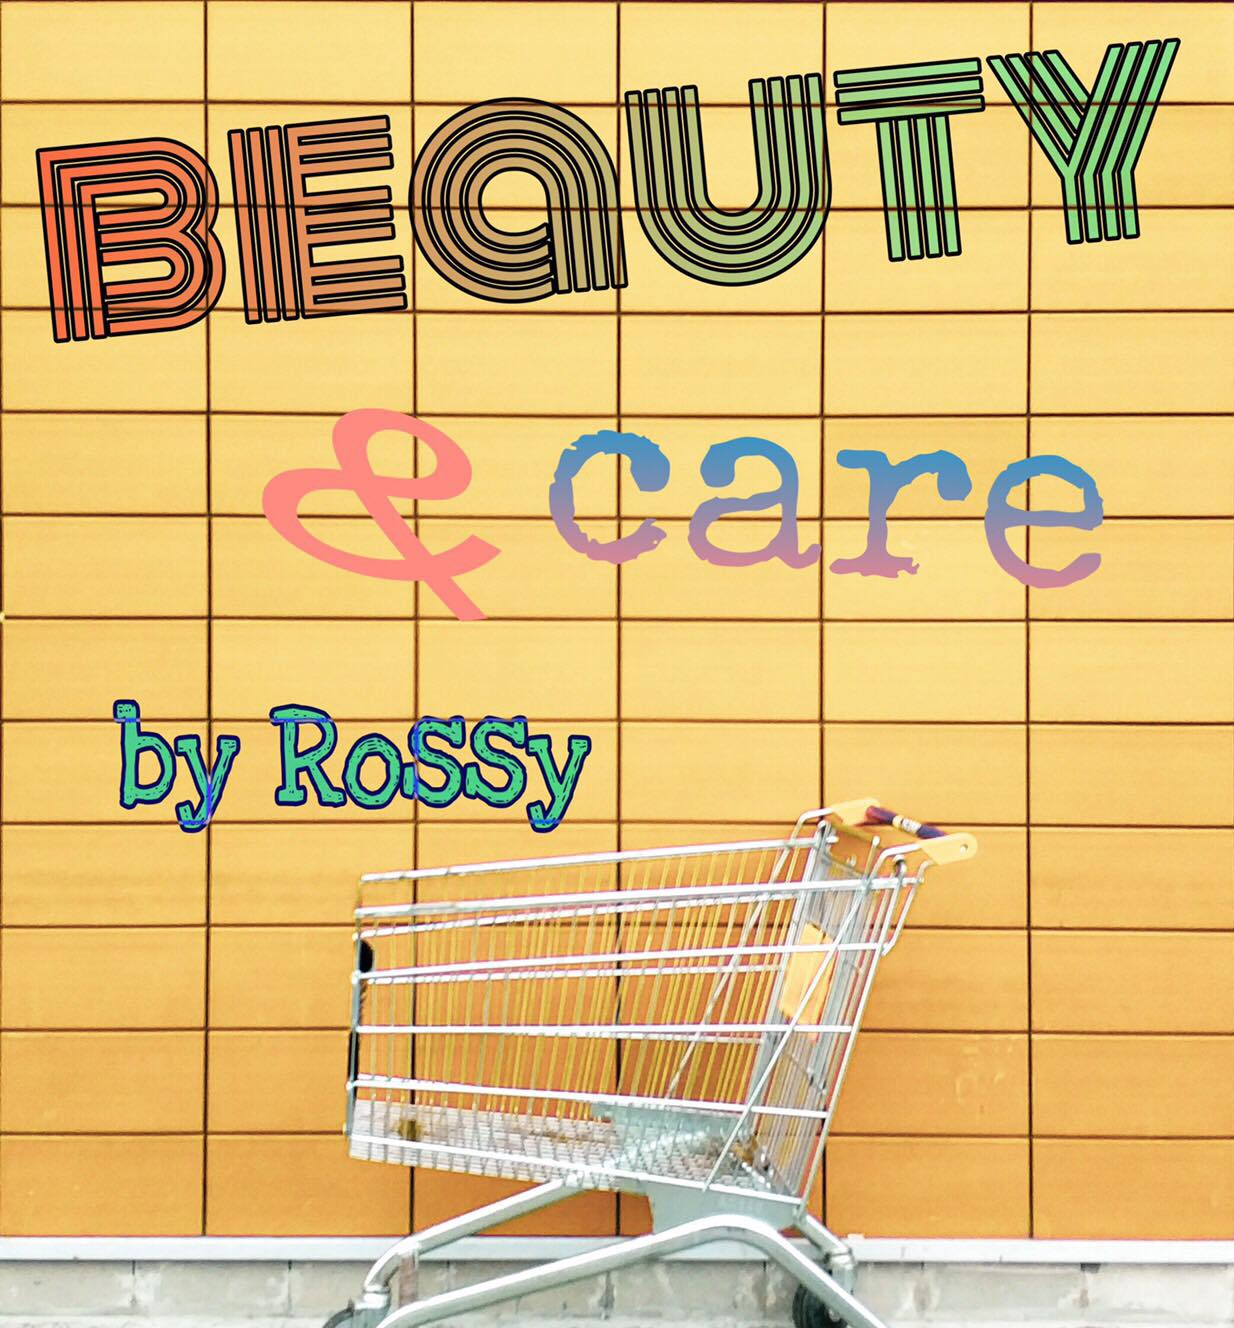 Beauty & Care by rossy